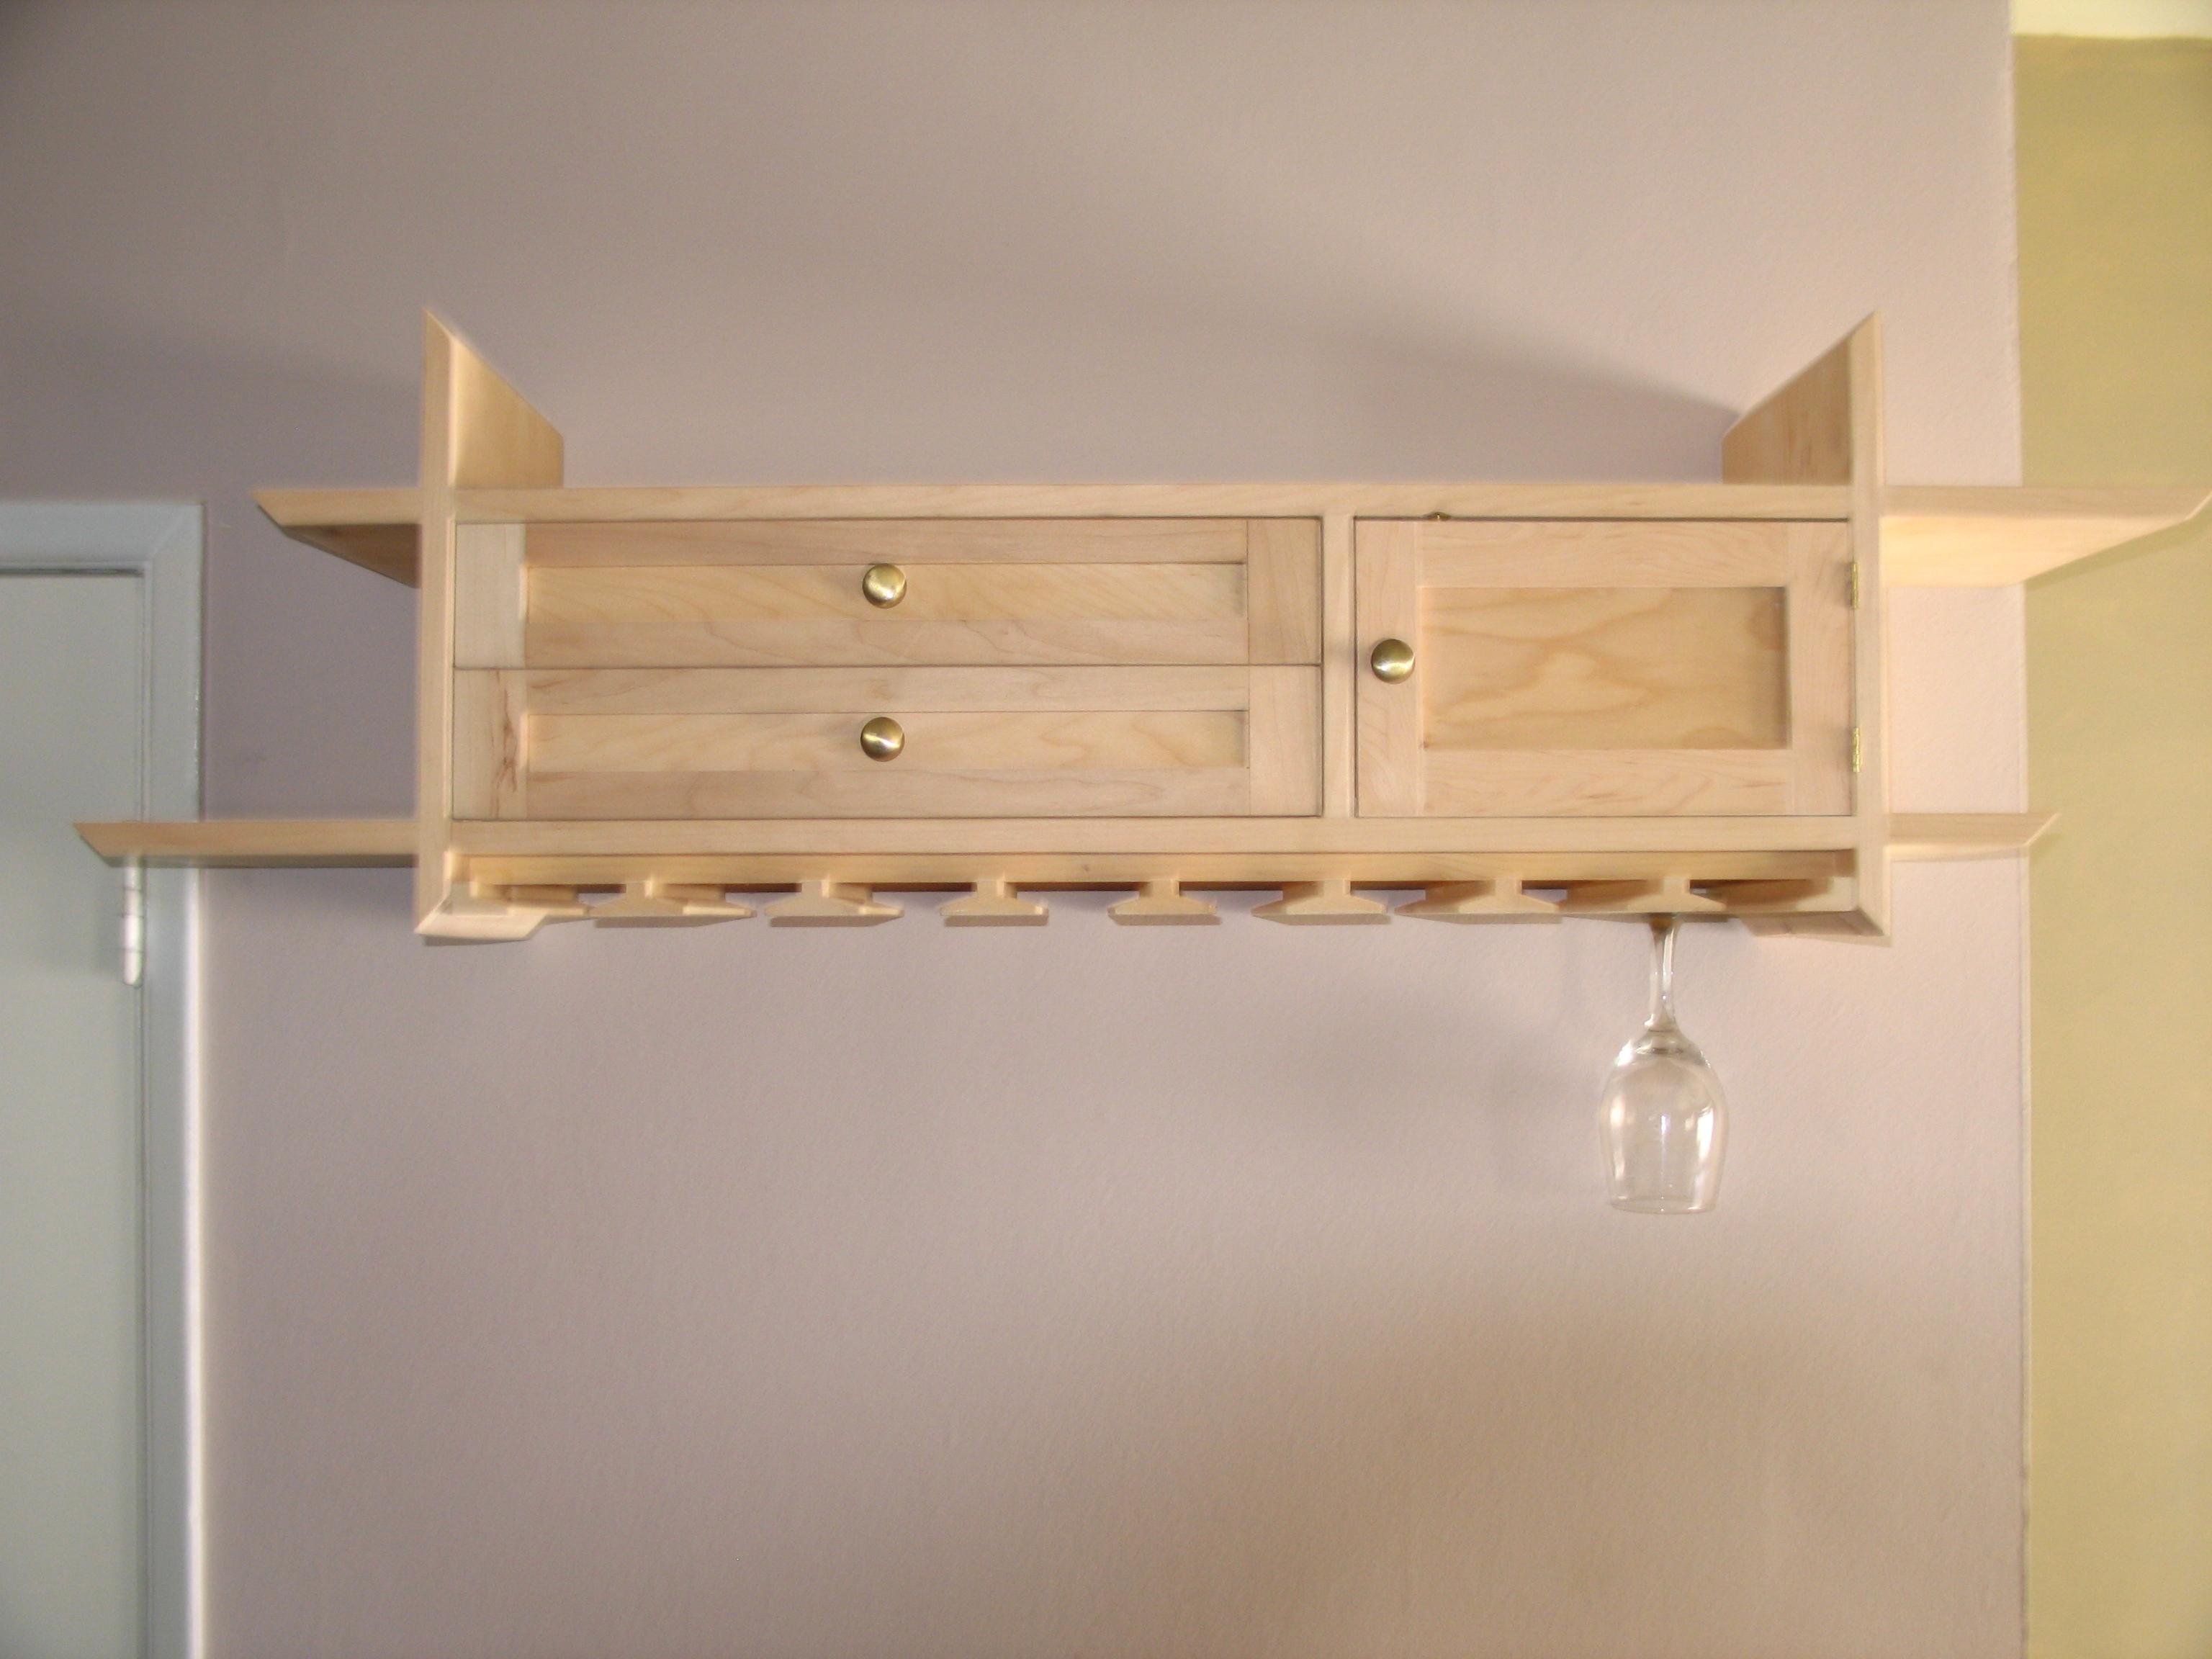 Wine glass rack with drawers and door out of reach of little hands